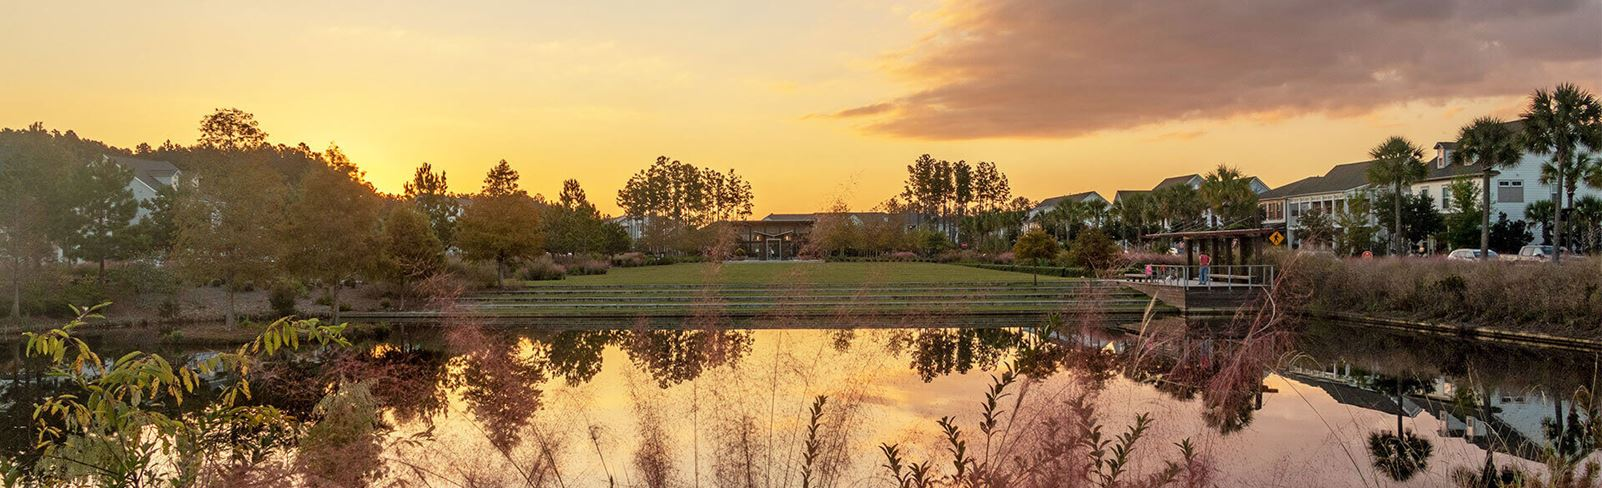 Pond and green space at sunset.